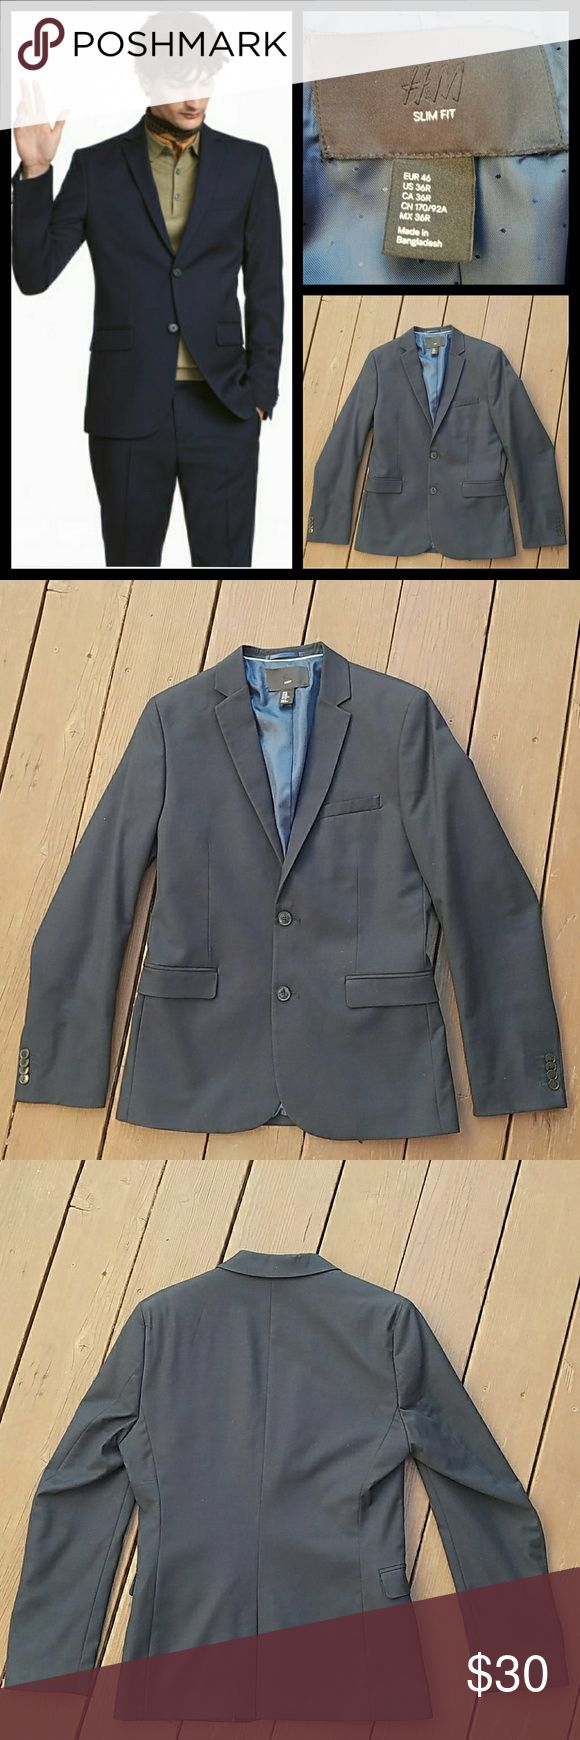 "H&M blazer Navy blue slim fit blazer from H&M. Only worn ones.  Outseam approx 27"" Shoulder to shoulder approx 15-1/2"" H&M Suits & Blazers"